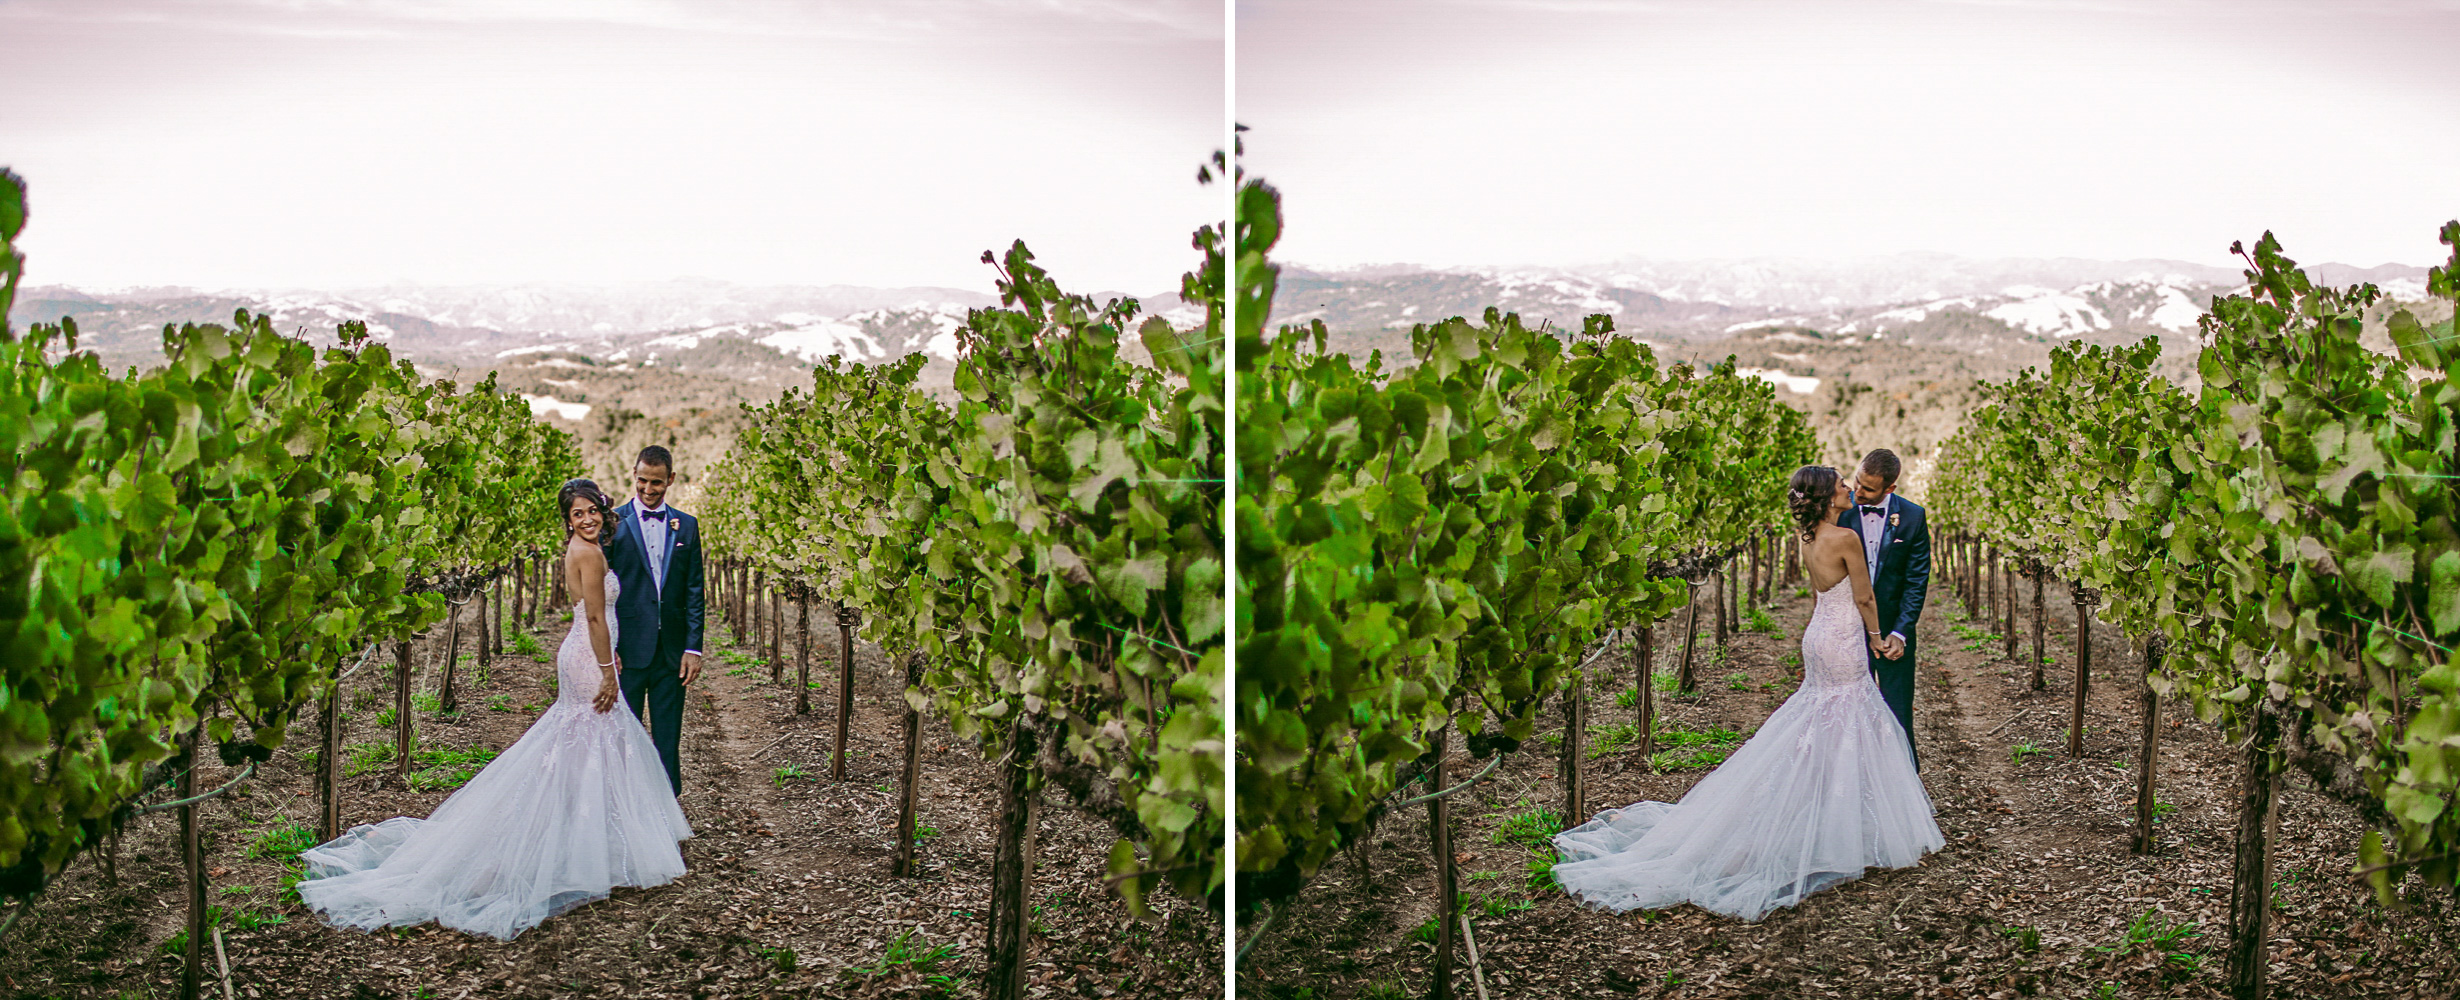 san diego wedding   photographer | collage of bride and groom standing in between rows of   plantation